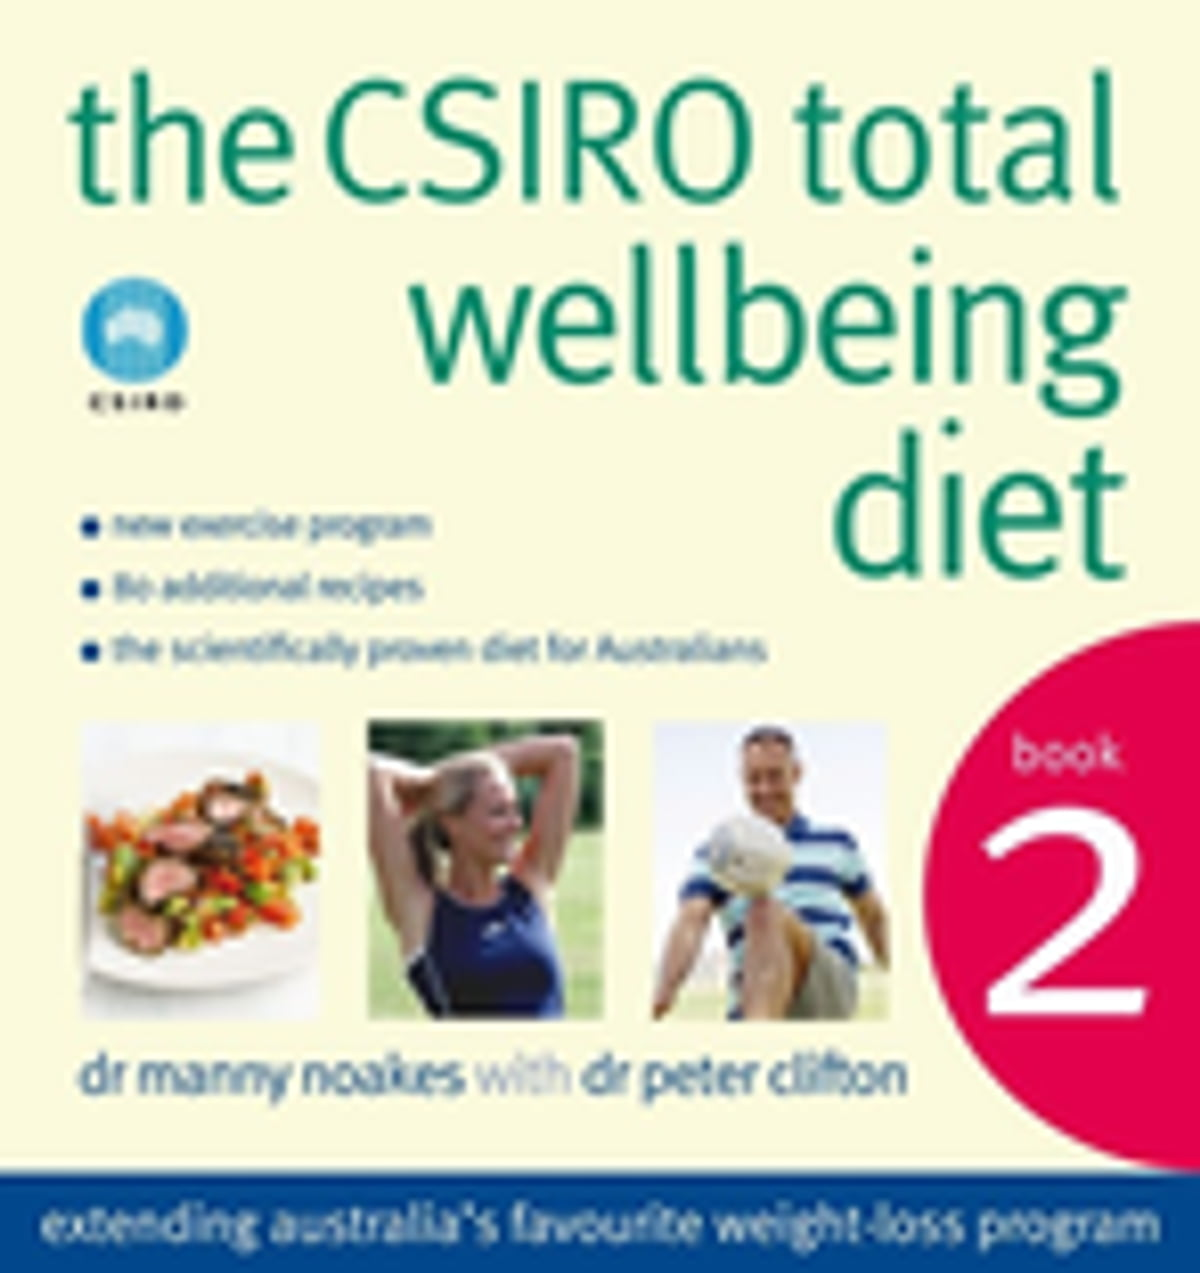 Csiro diet review 2020